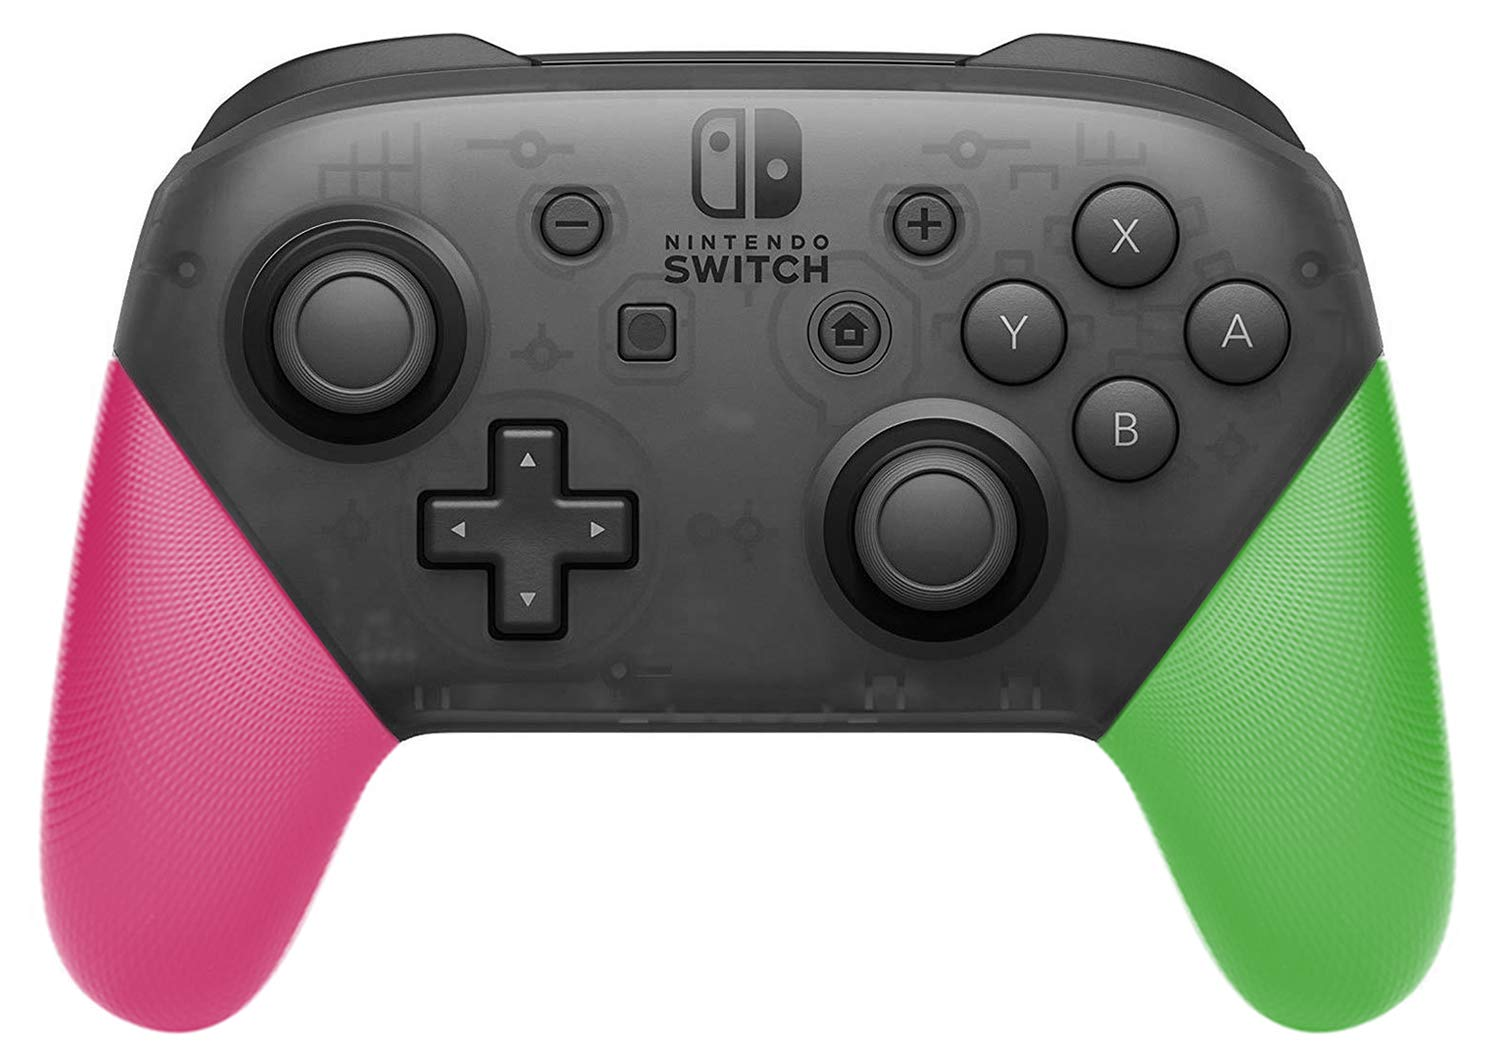 Anti-Slip Grip Shell for Switch Pro Controller, DIY Delicate and Textured Replacement Grip Handles Cover Shell for Nintendo Switch Pro Controller (Pink & Green) by MENEEA